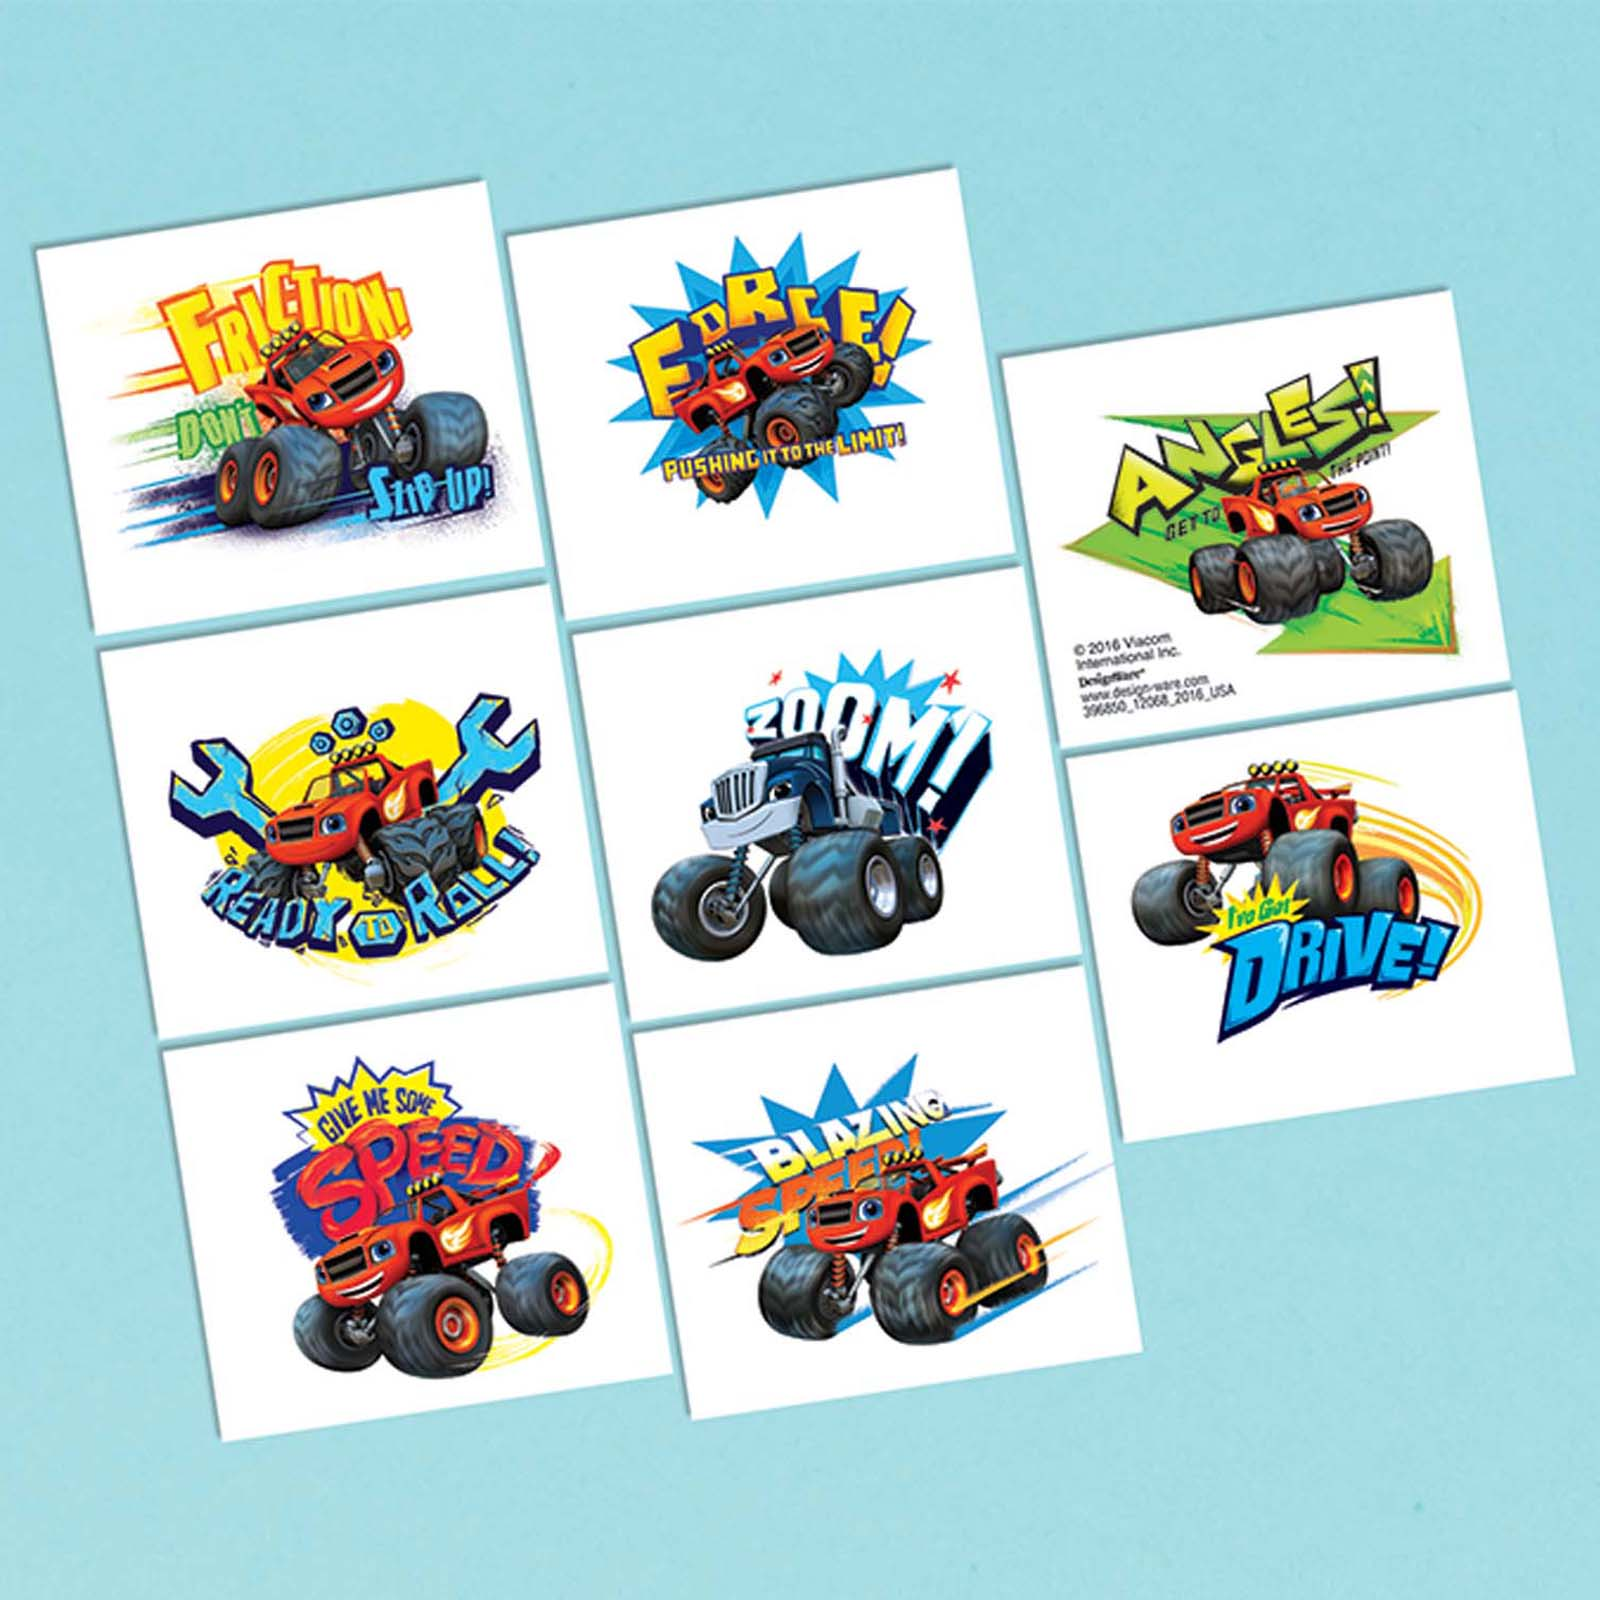 Blaze and the Monster Machines Tattoo Favors (16 Pack) - Party Supplies BB396850